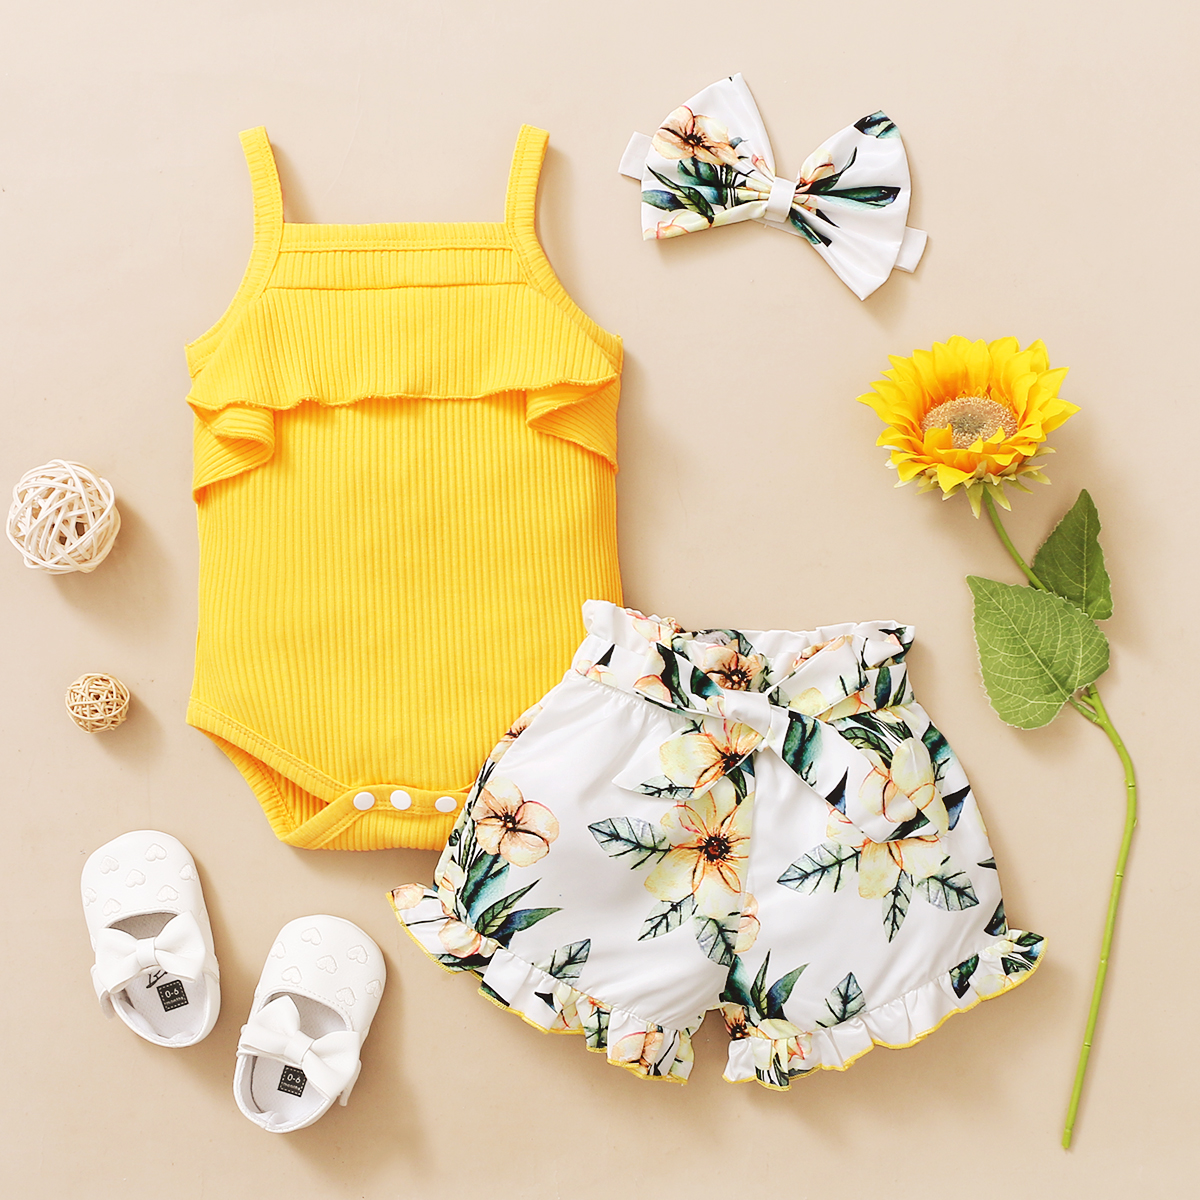 3Pcs Newborn Baby Girls Summer Clothes Cute Beach Boho Strap Ruffle Romper Floral Shorts Toddler Outfit Baby Girls Clothing 2